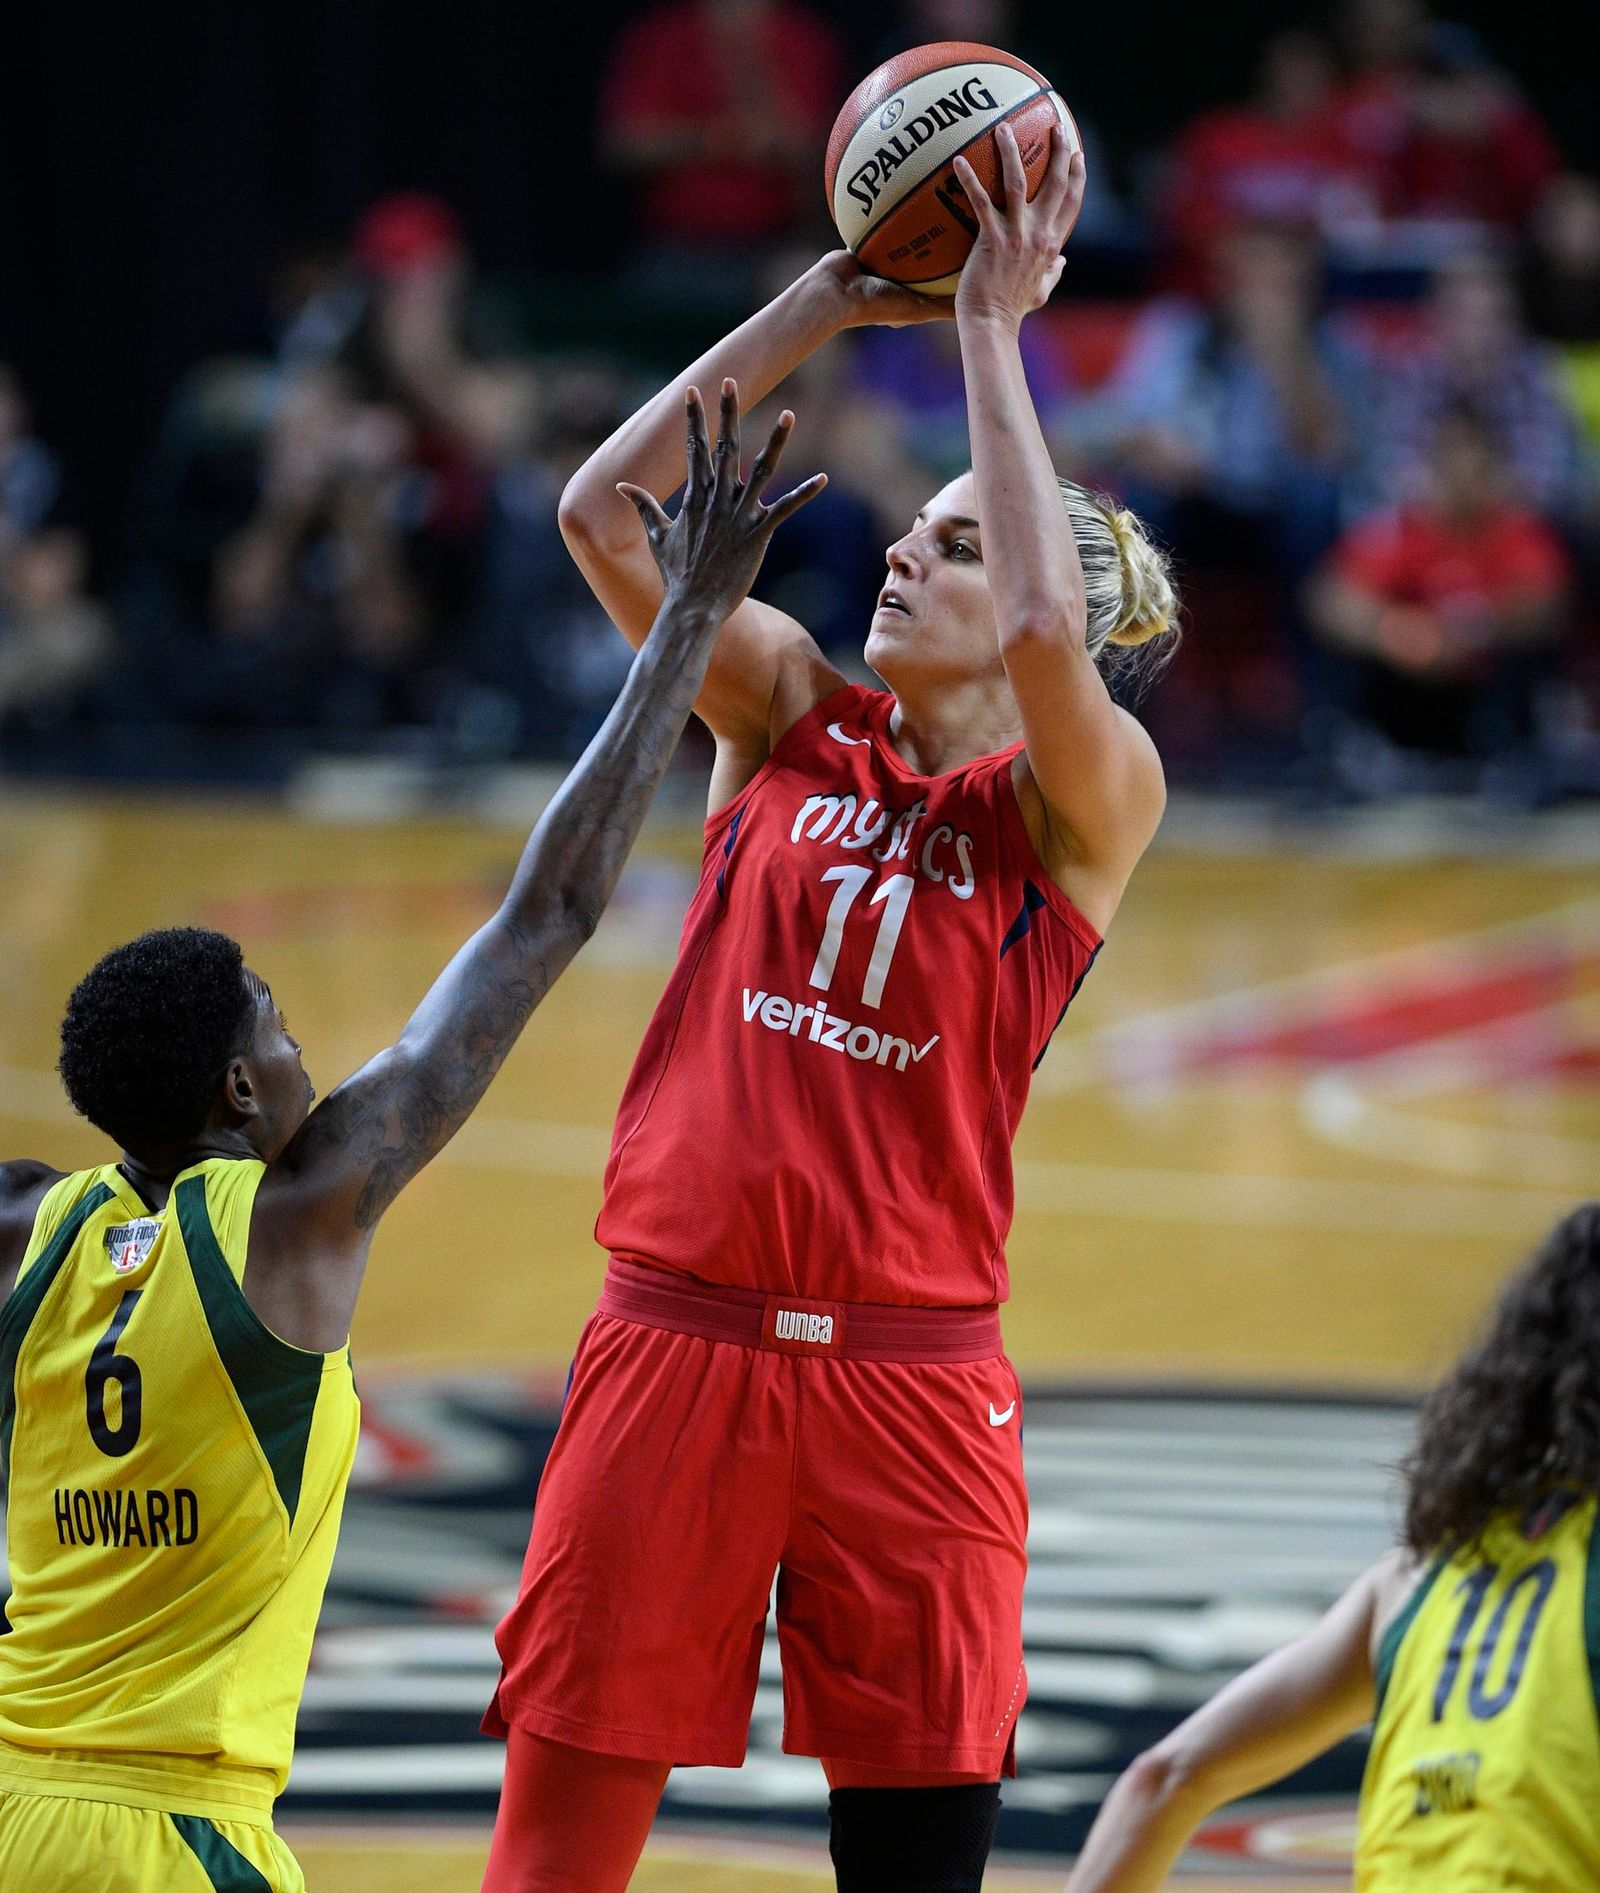 FILE - In this Sept. 12, 2018, file photo, Washington Mystics forward Elena Delle Donne (11) shoots against Seattle Storm forward Natasha Howard (6) during the second half of Game 3 of the WNBA basketball finals, in Fairfax, Va. (AP Photo/Nick Wass, File)